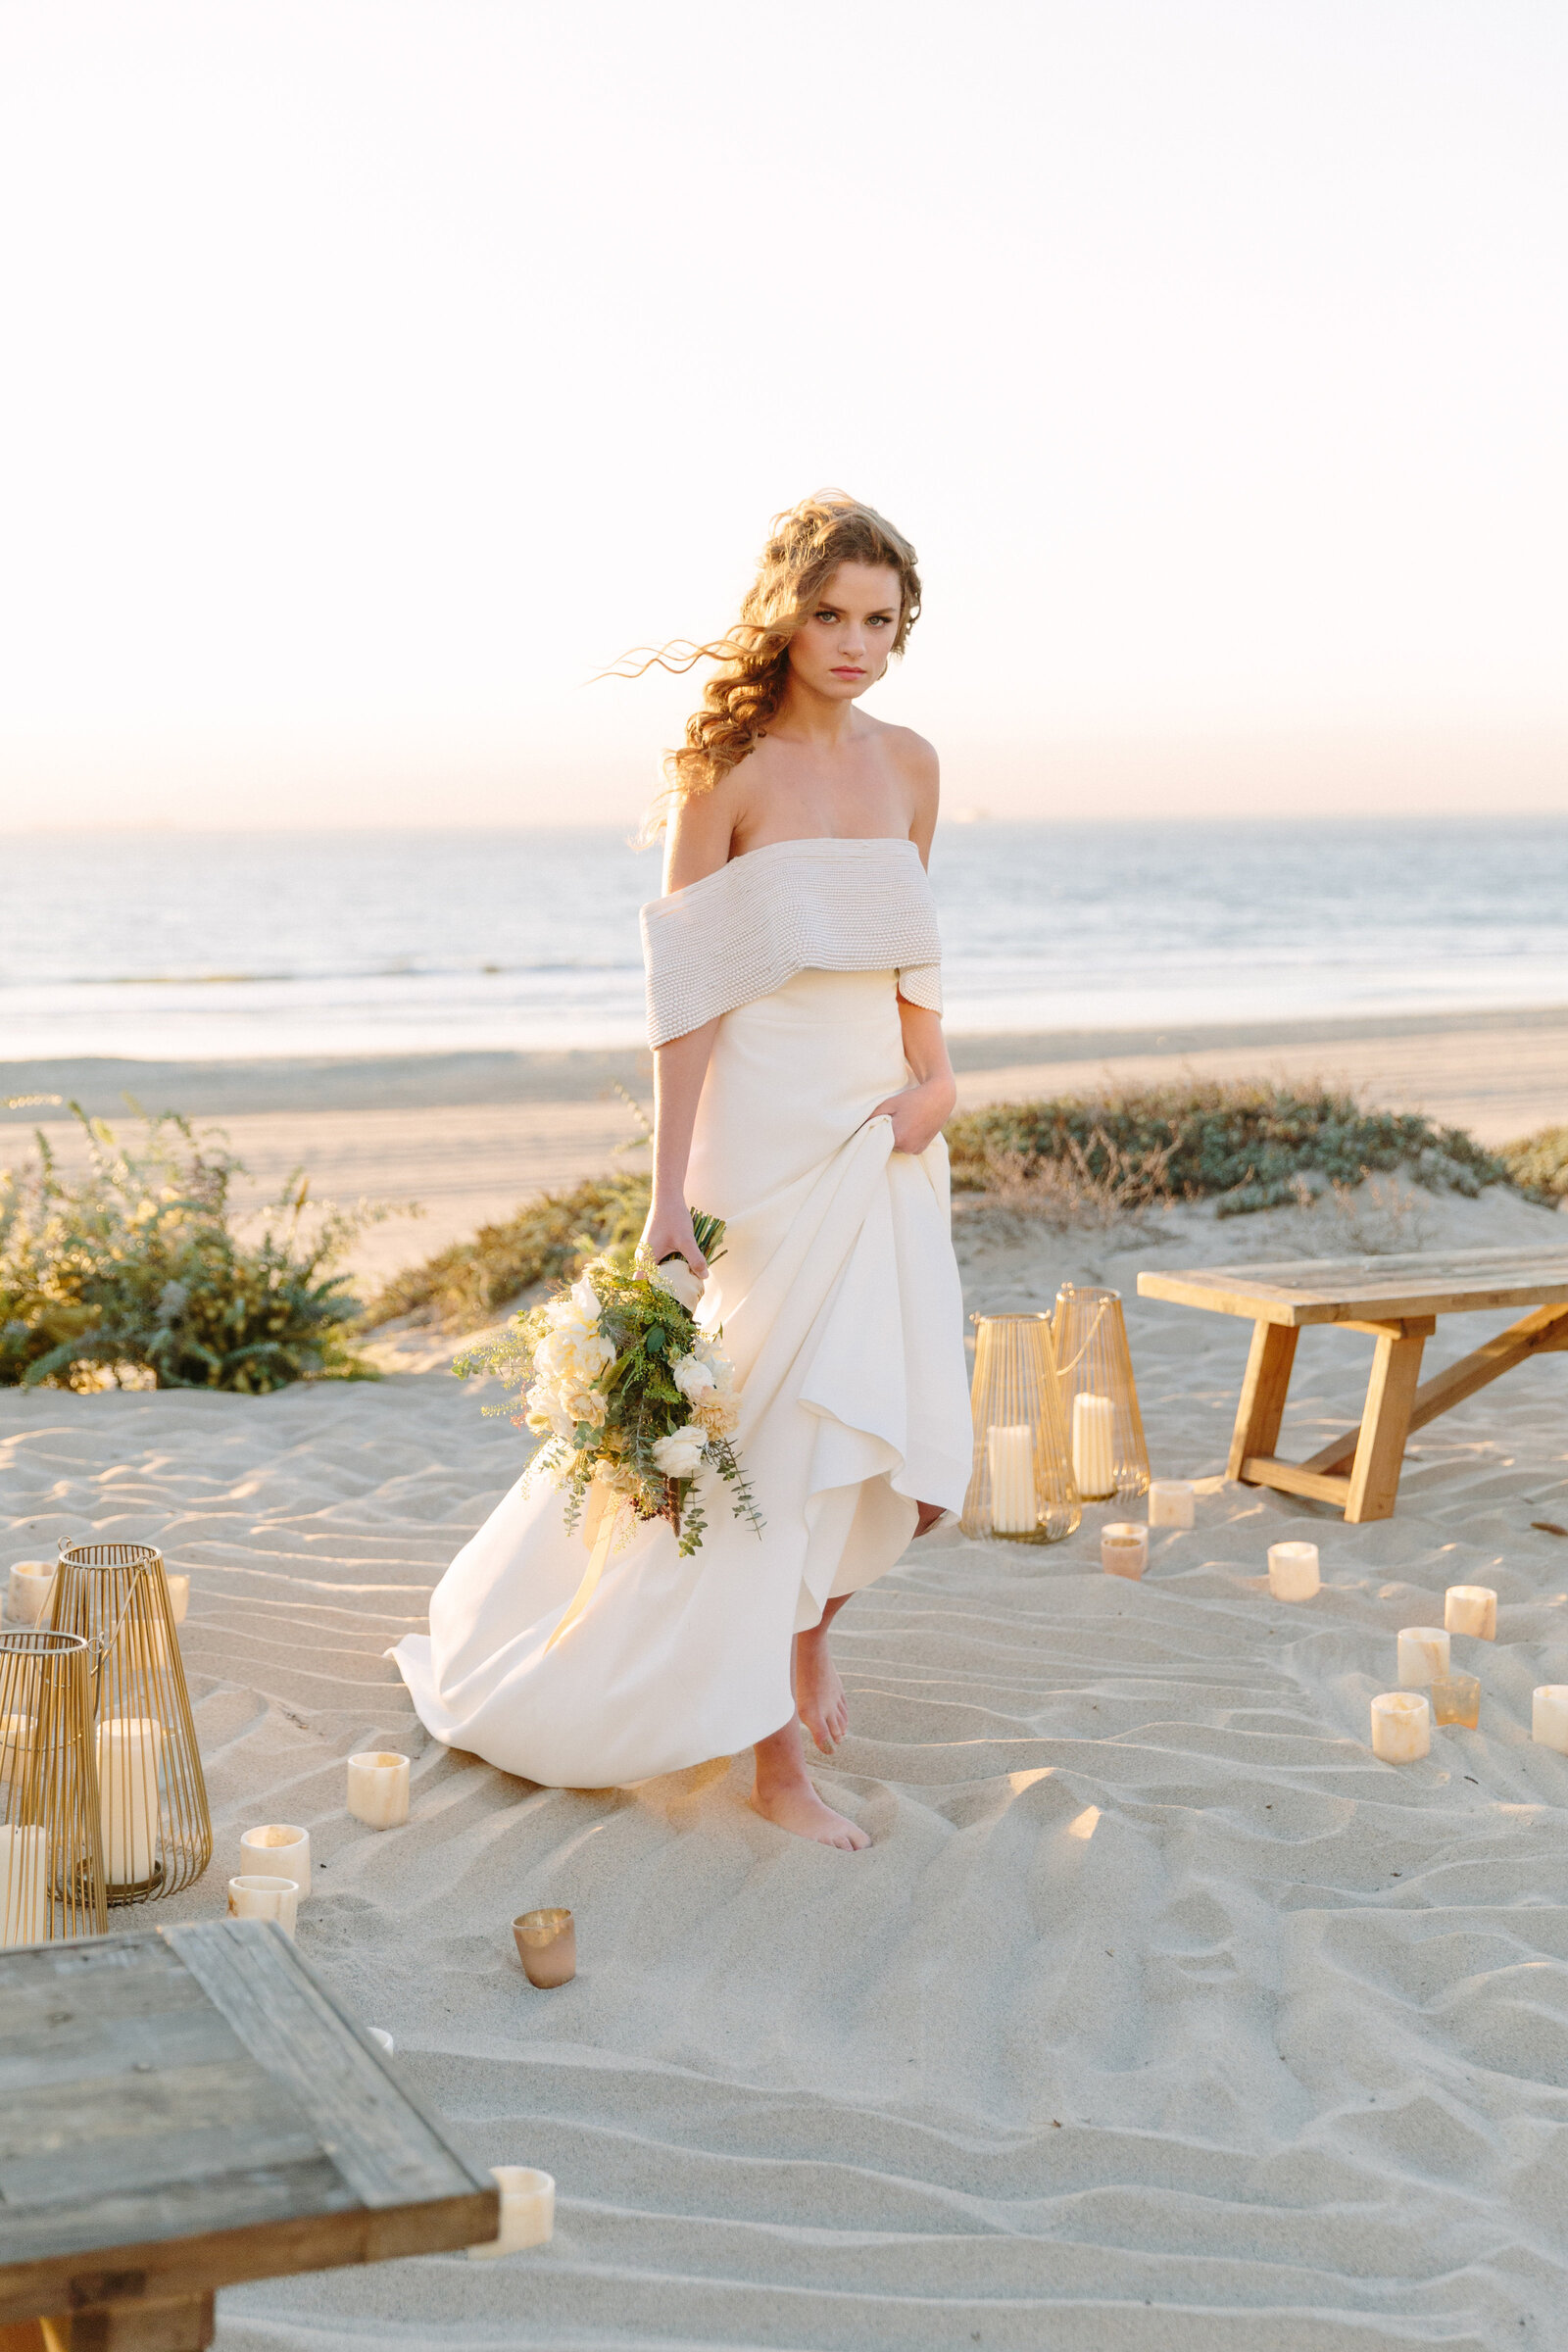 053-larissa-cleveland-editorial-fashion-wedding_photographer-san-francisco-carmel-napa-california-LCphoto-winter-beach-socal-108